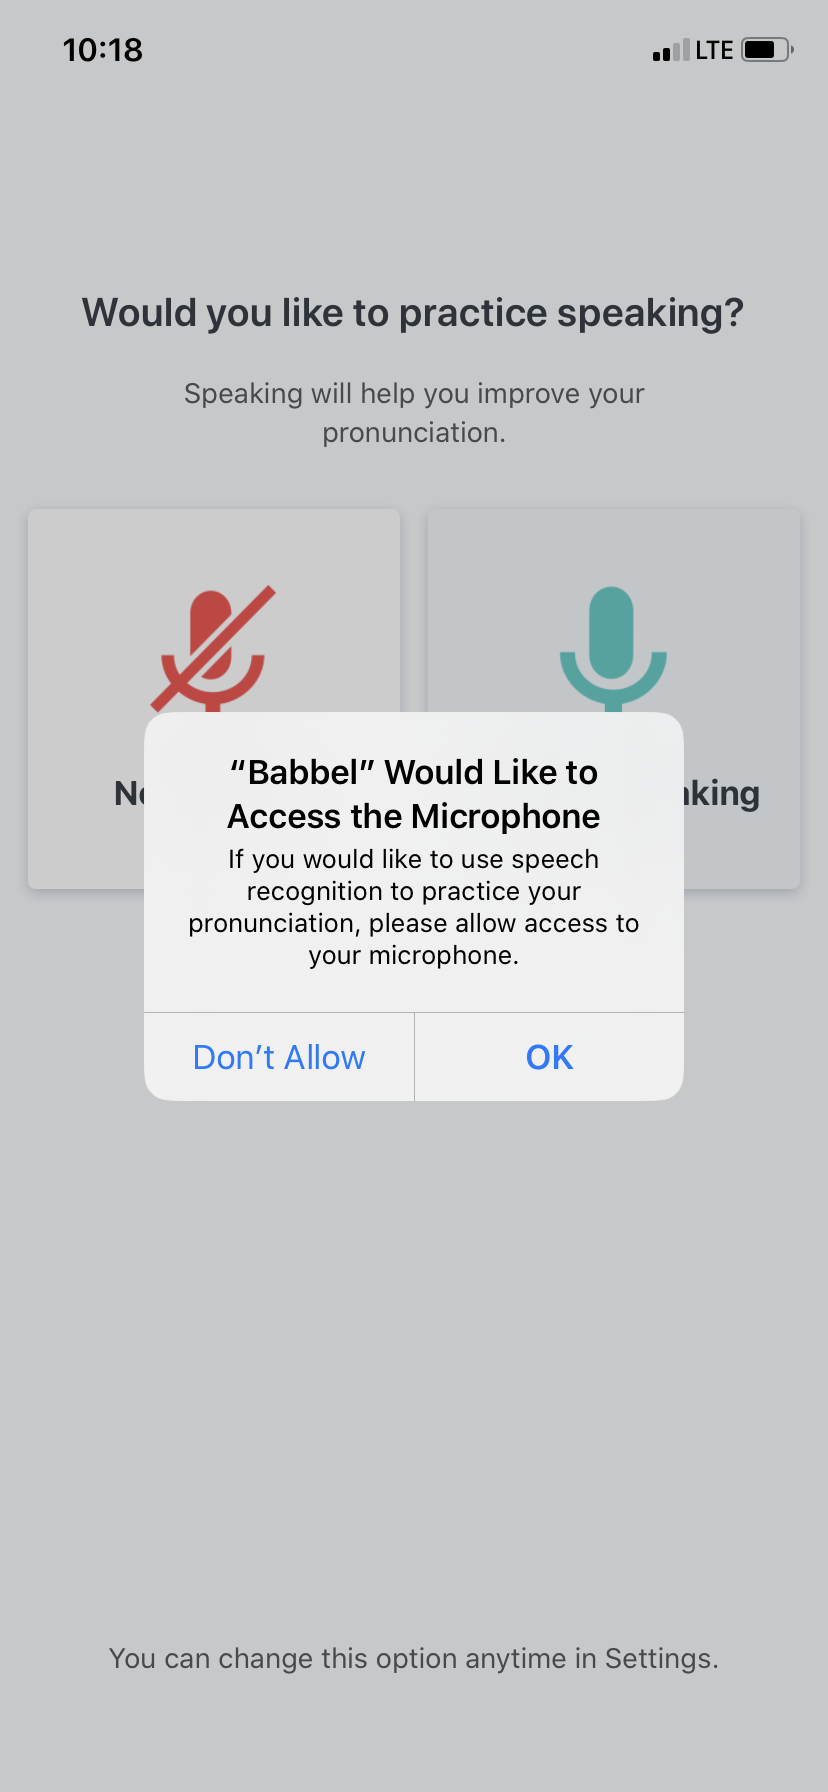 babbel microphone access permission priming pop up